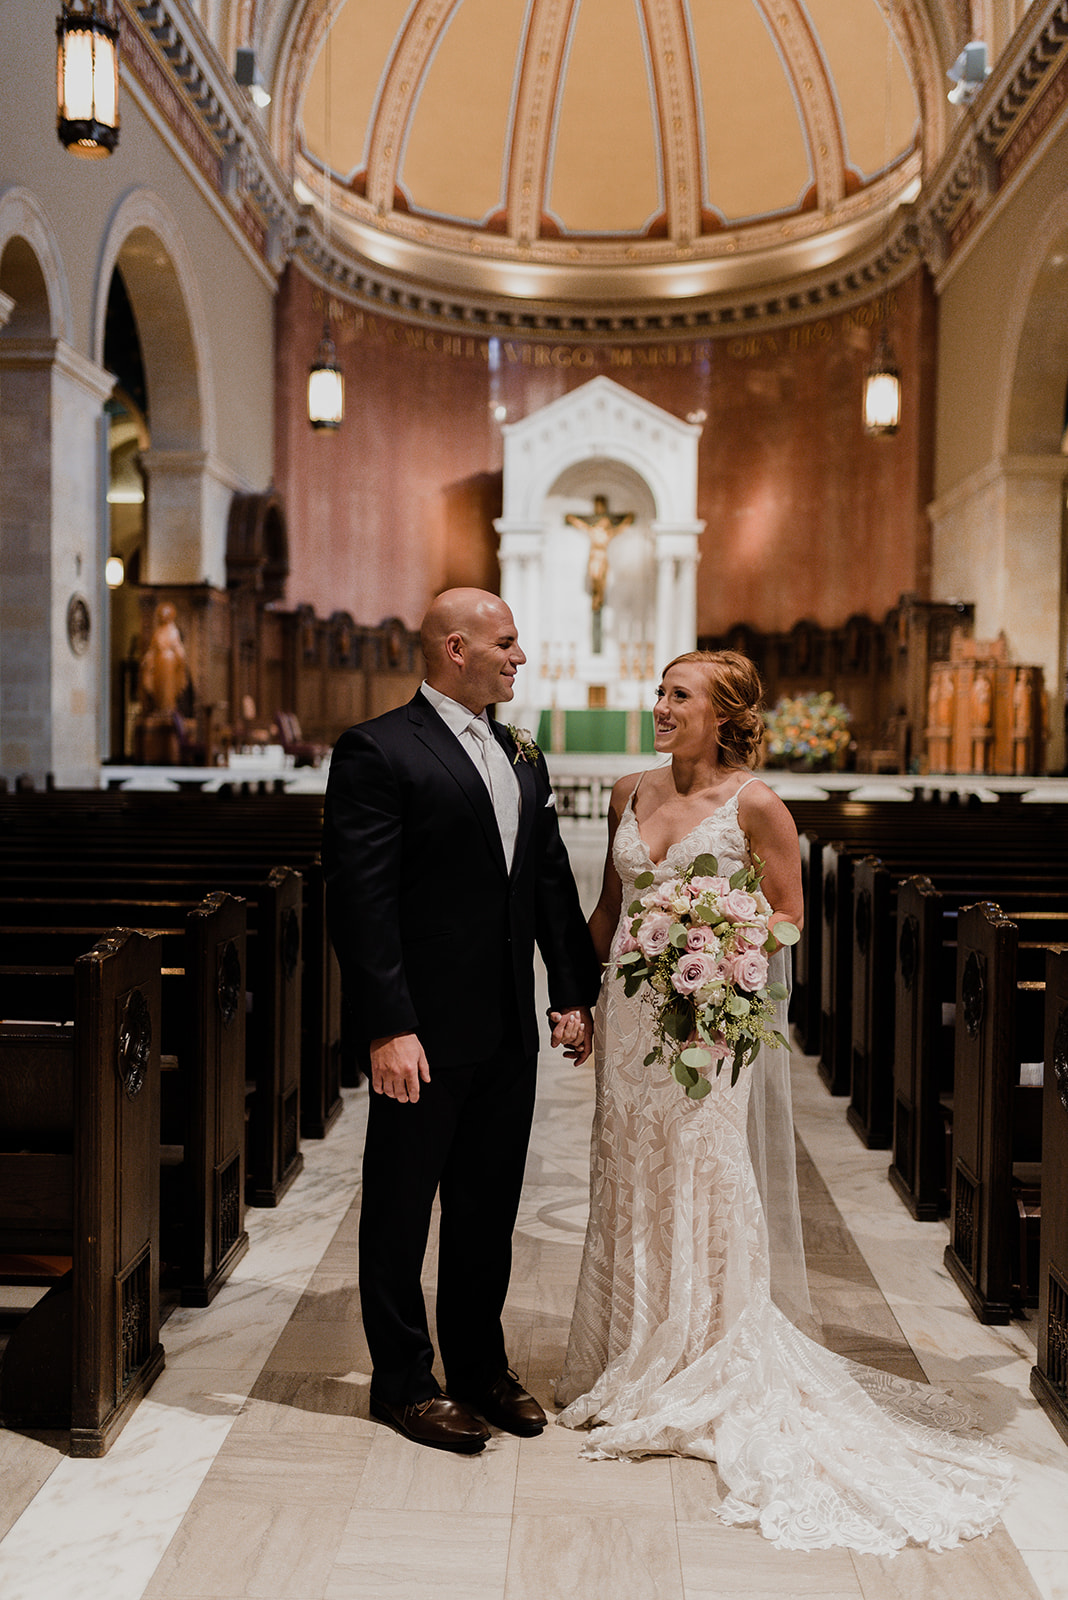 """Caitlin // Bride - """"Definitely made picking floral arrangements an easy part of all of the planning! I LOVED everything we came up with together, and loved it all even more when the day came and I saw the bouquets. Everything was absolutely perfect!""""PHOTO: CHARITY JOY PHOTOGRAPHY"""